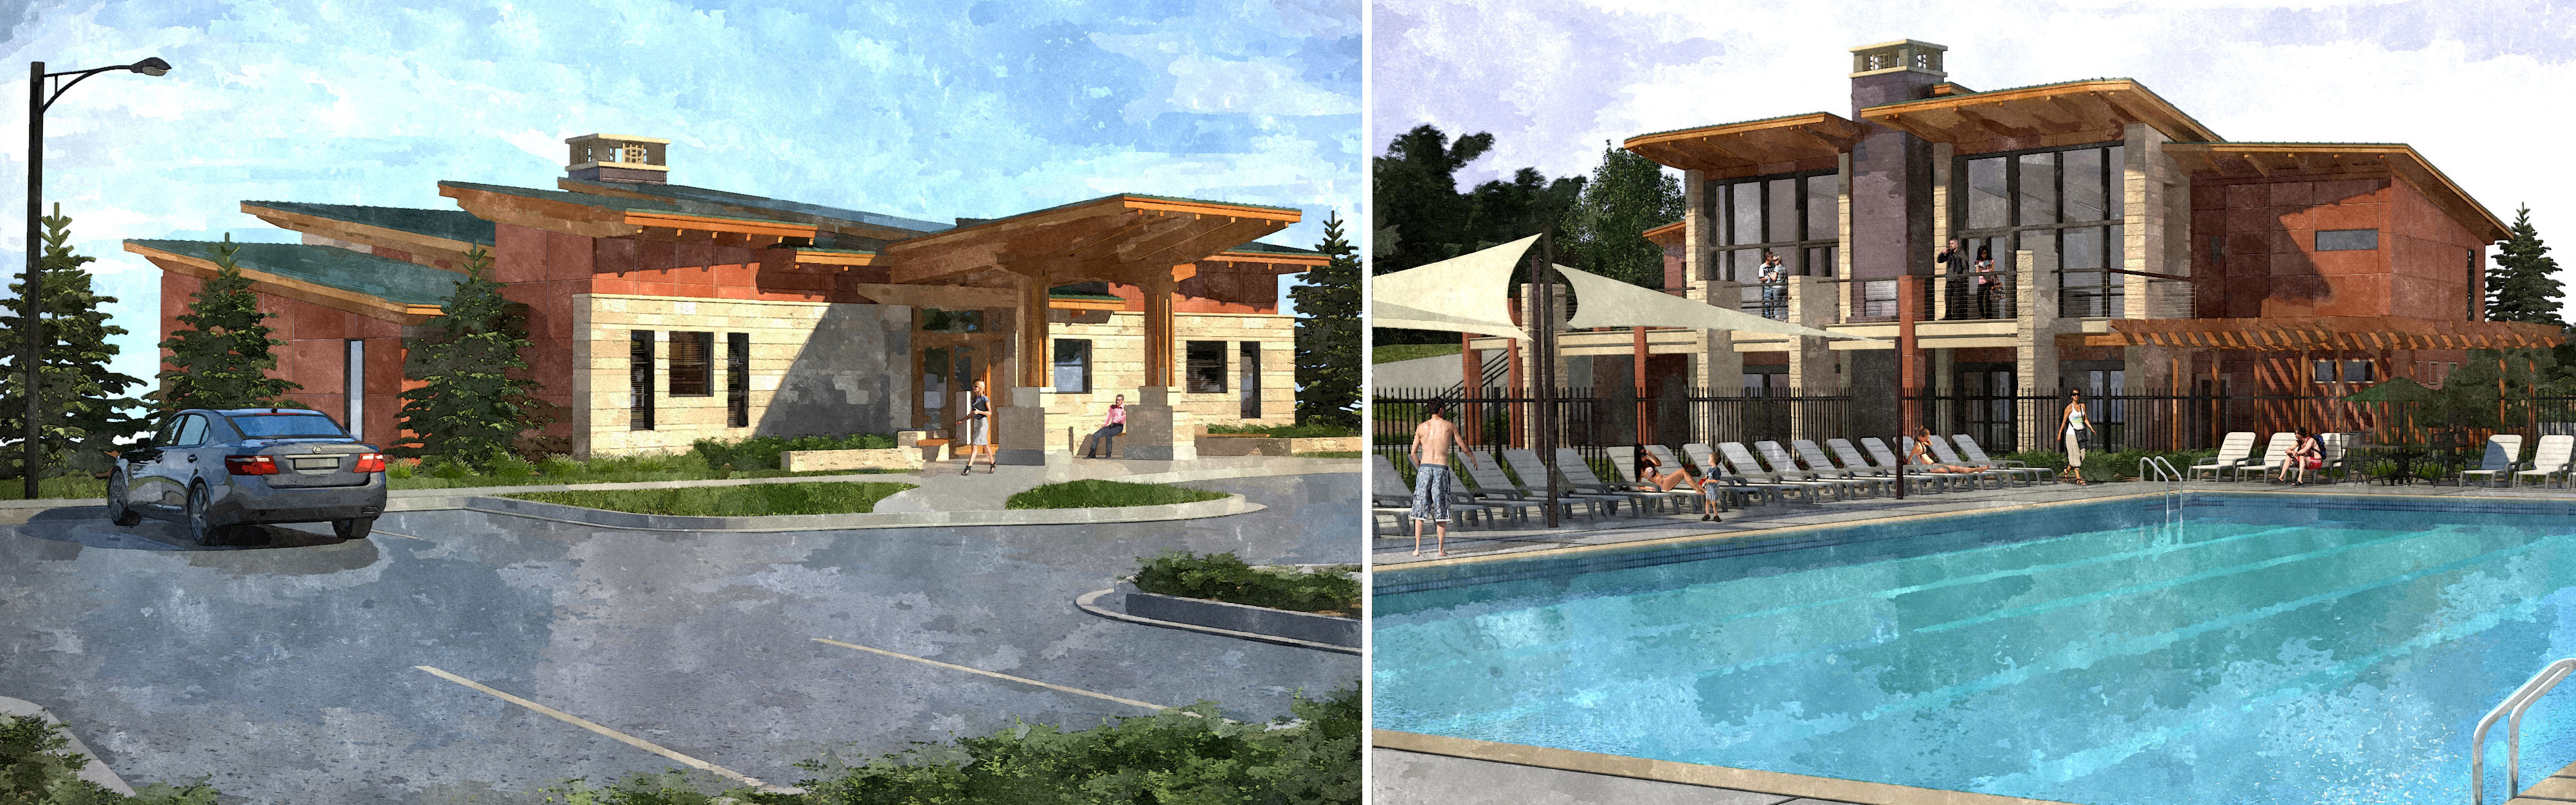 Pool clubhouse design modern home design ideas for Clubhouse architecture design